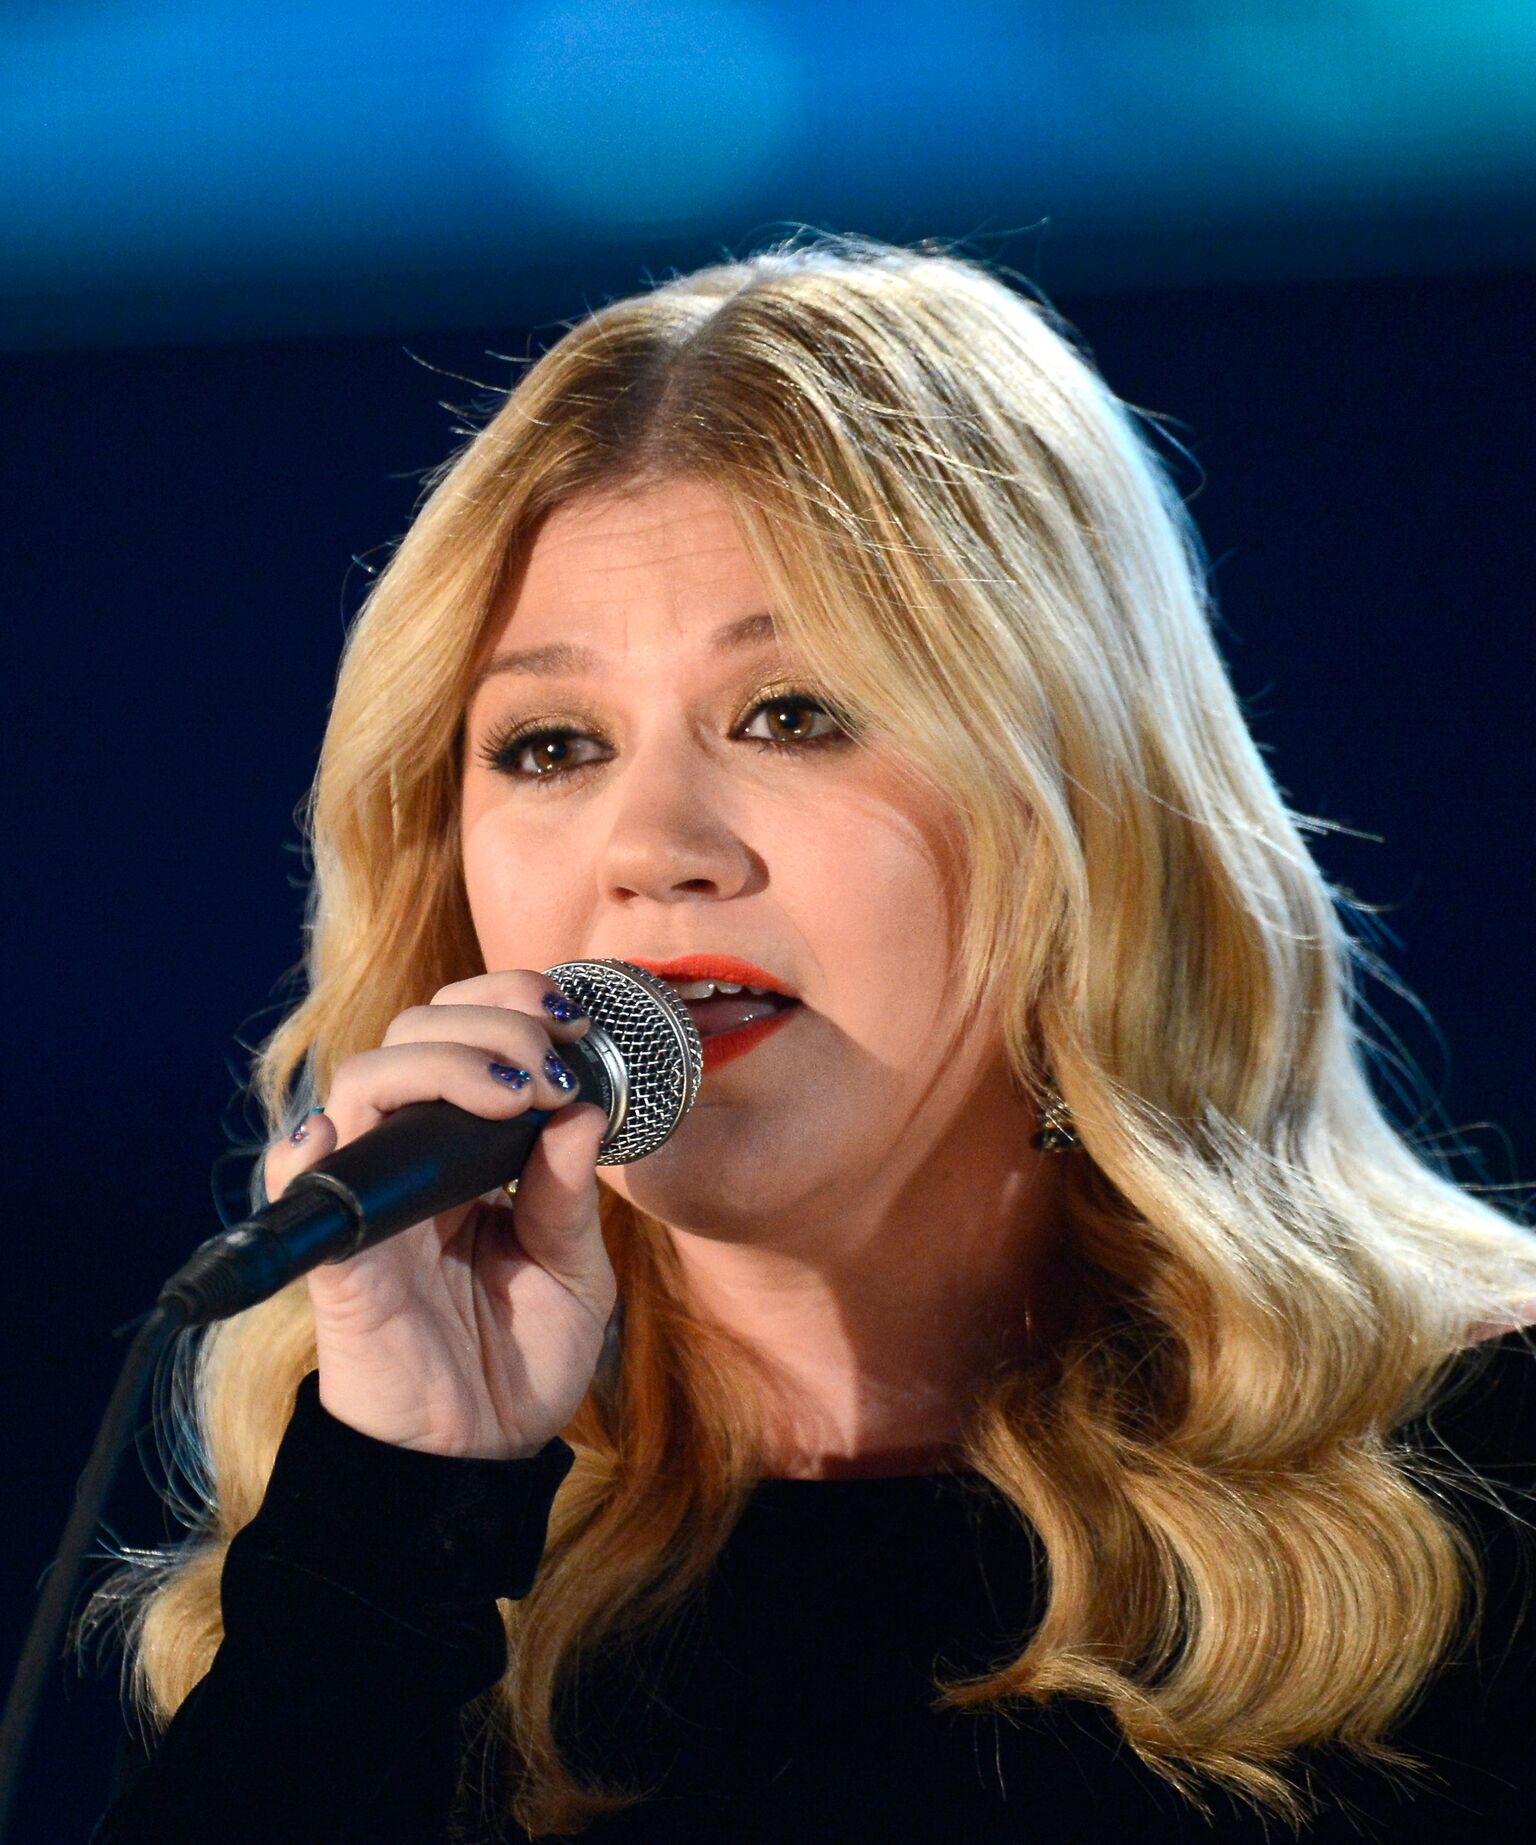 Singer Kelly Clarkson performs onstage at the 55th Annual GRAMMY Awards at Staples Center on February 10, 2013 | Photo: Getty Images